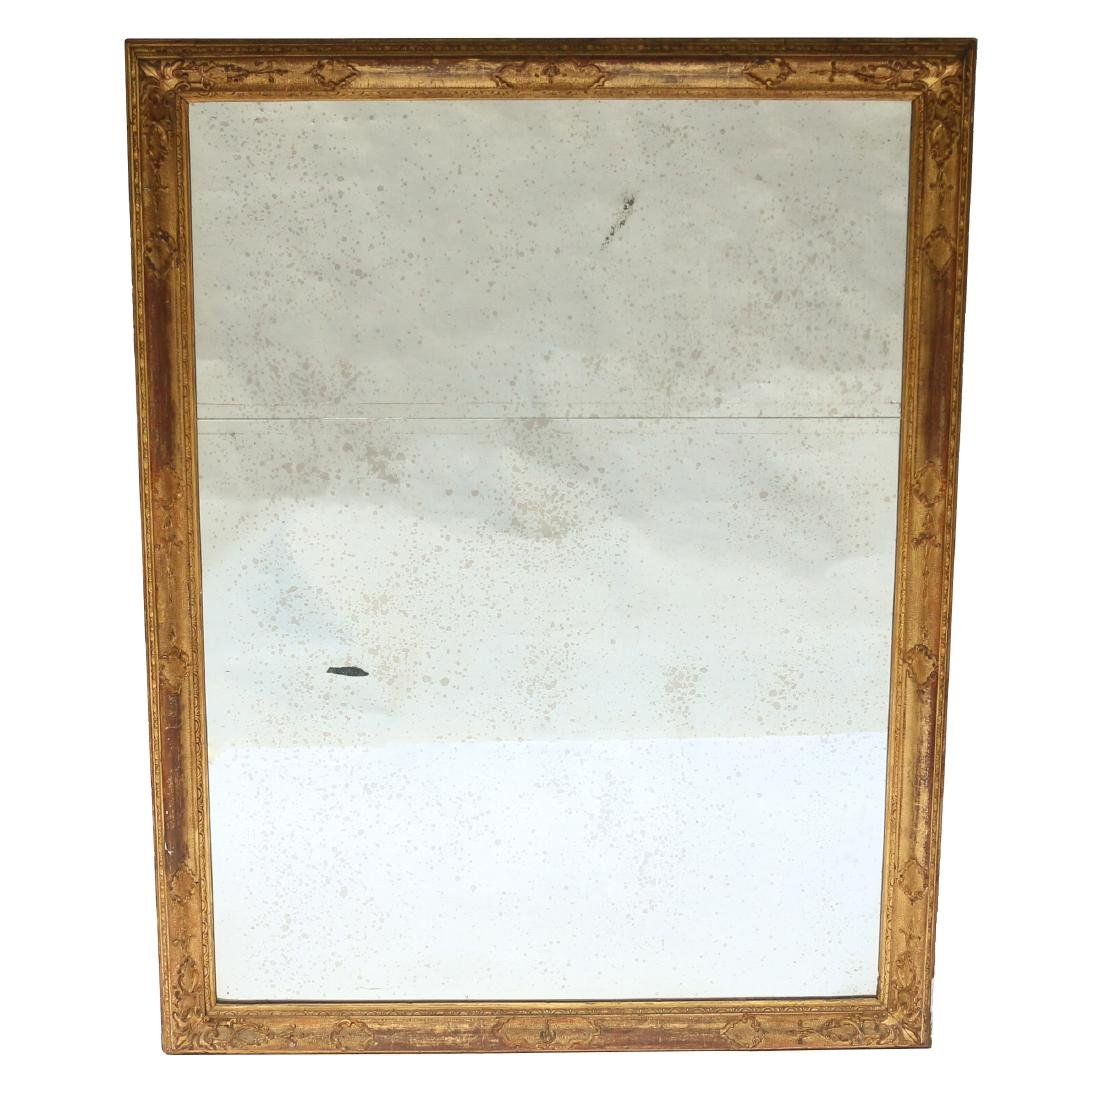 18TH C. GILT CARVED WALL MIRROR